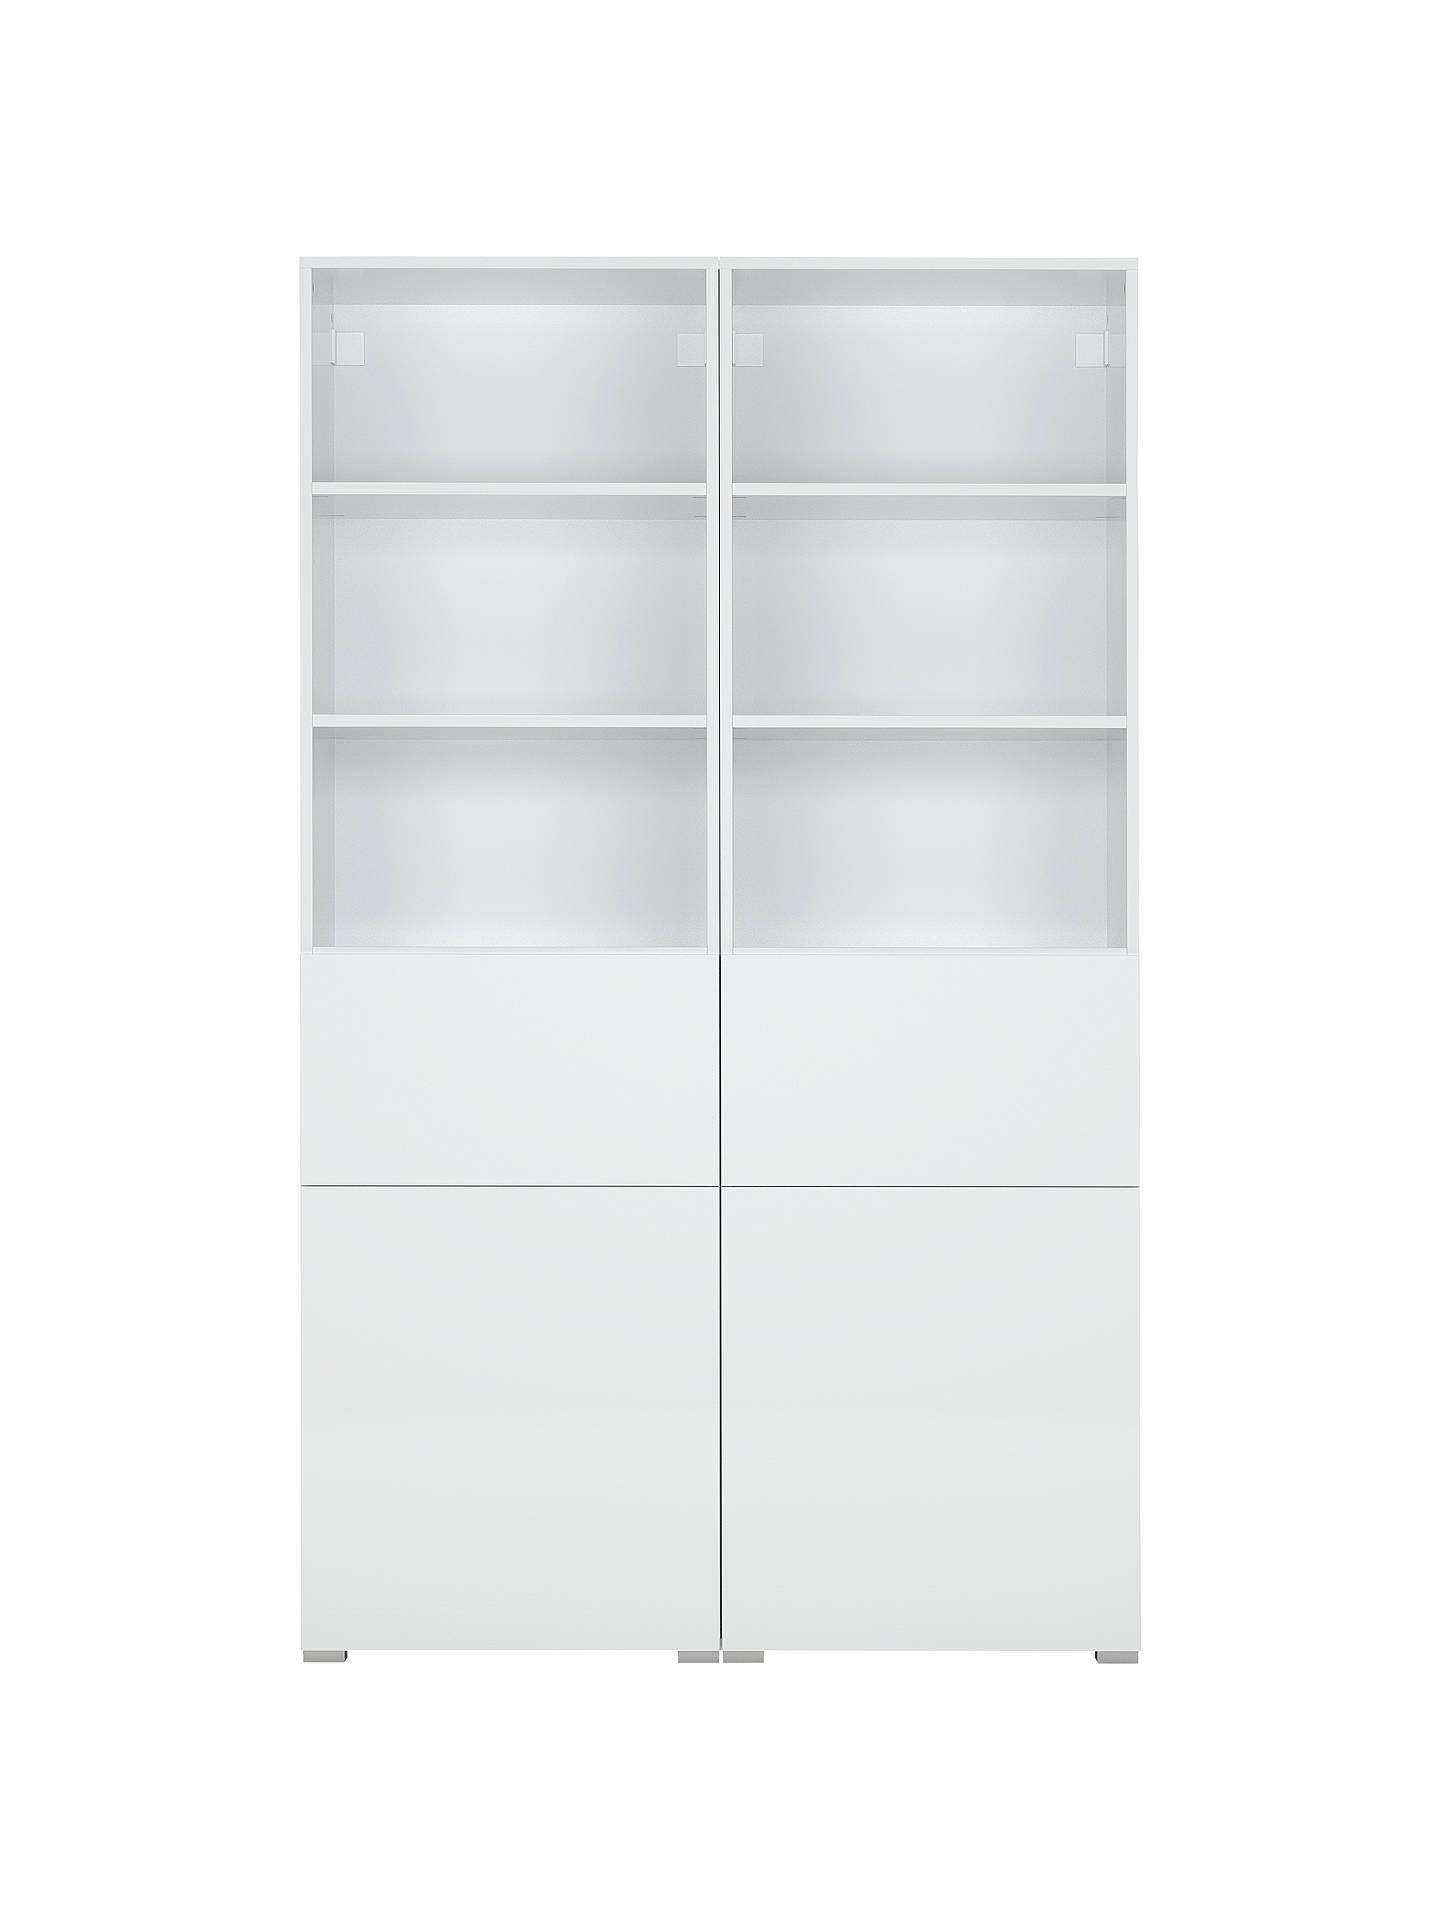 BuyHouse by John Lewis Mix it Double White unit - White frame / door (2 Mid, 2 Low) Online at johnlewis.com